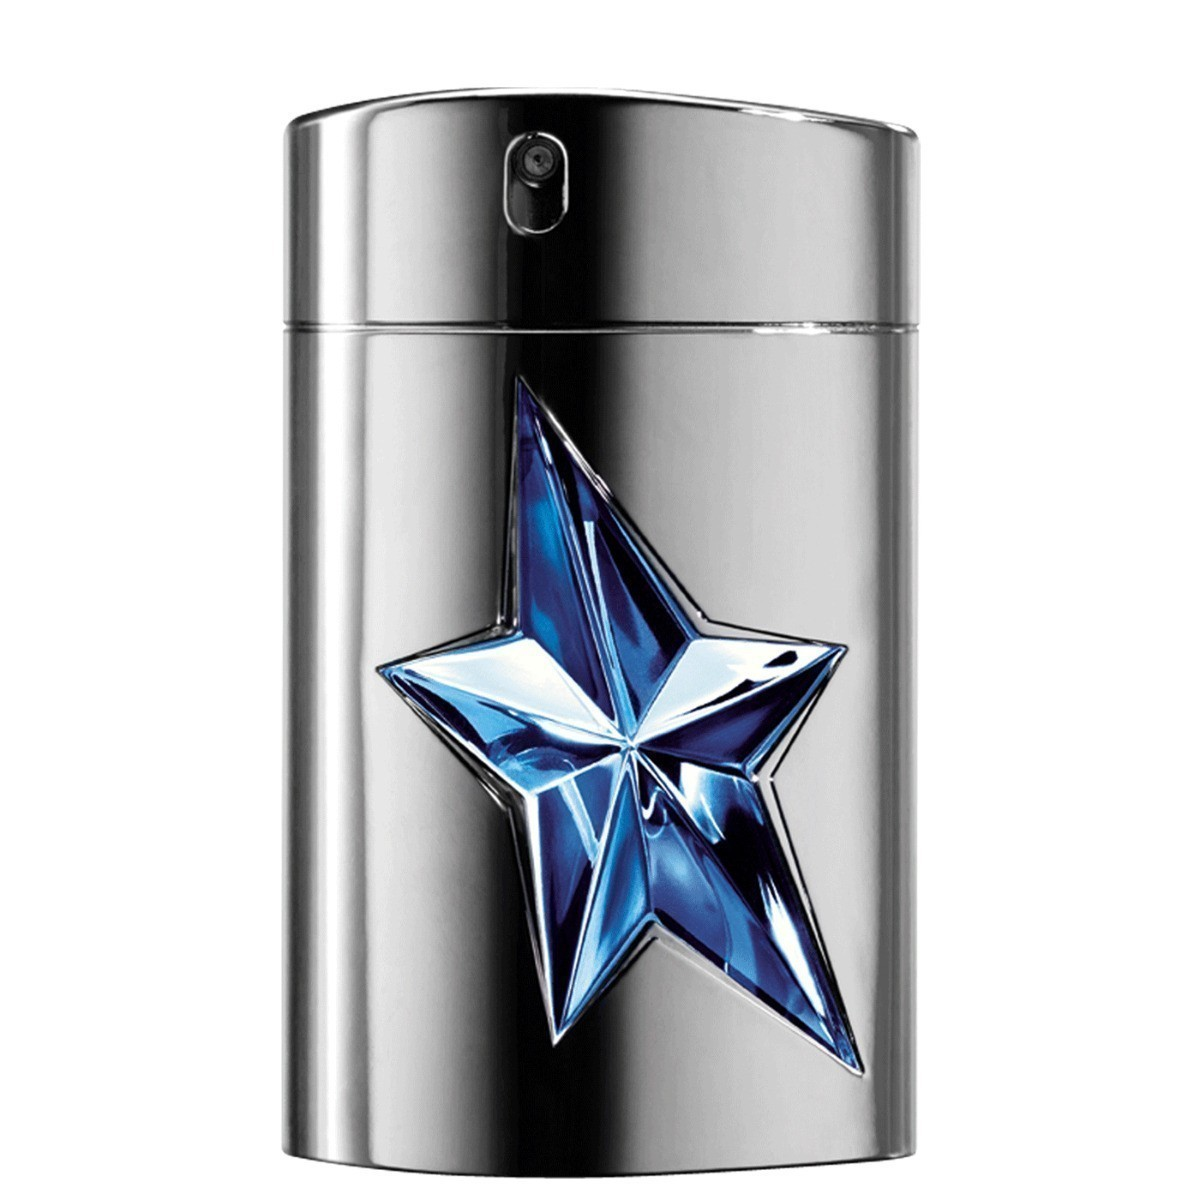 THIERRY MUGLER A*Men Metal